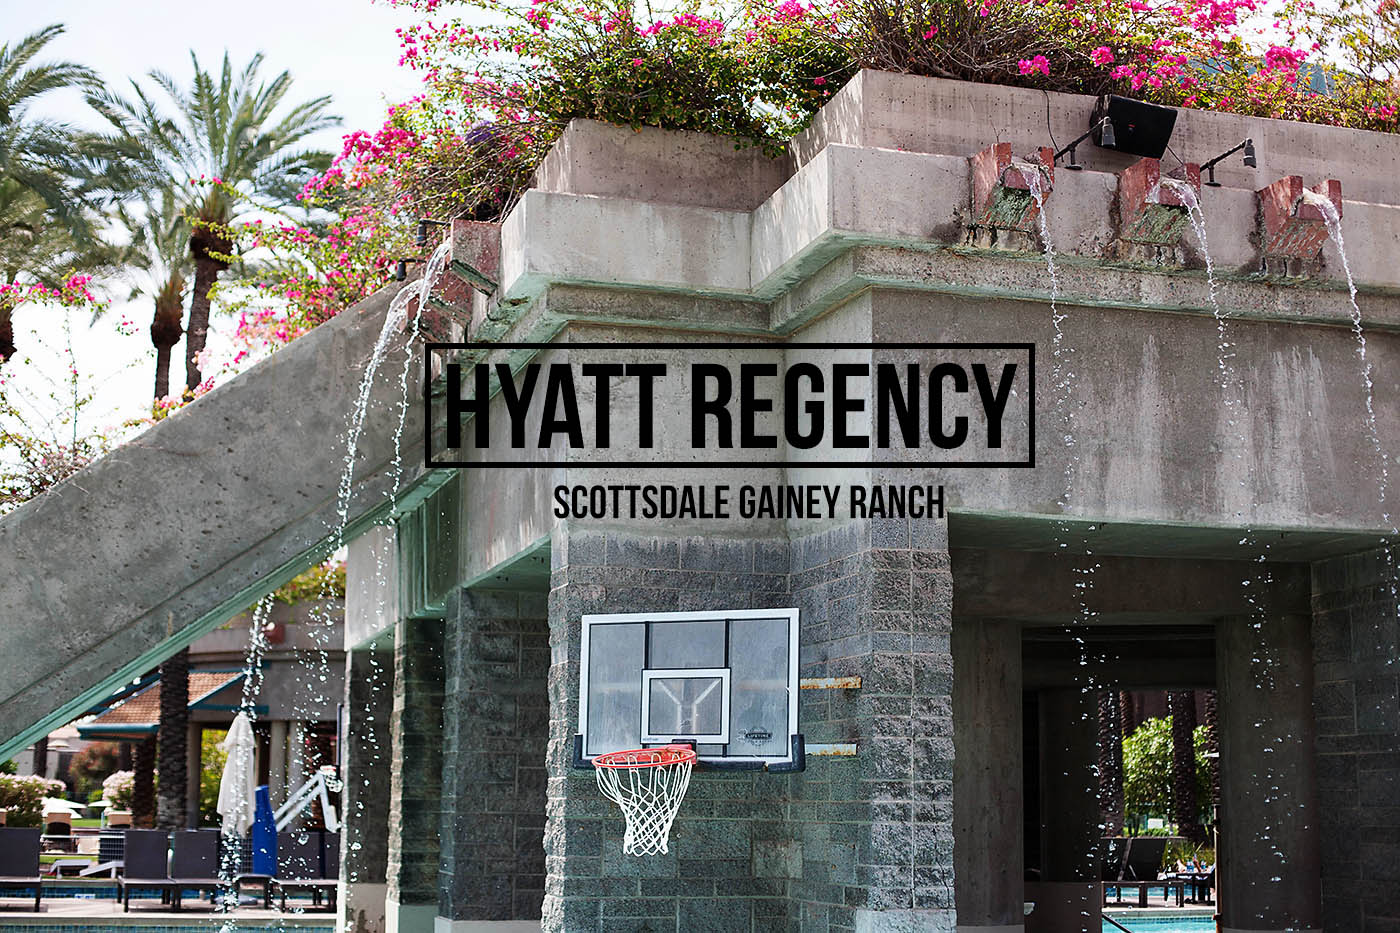 Hyatt Regency Scottsdale Gainey Ranch